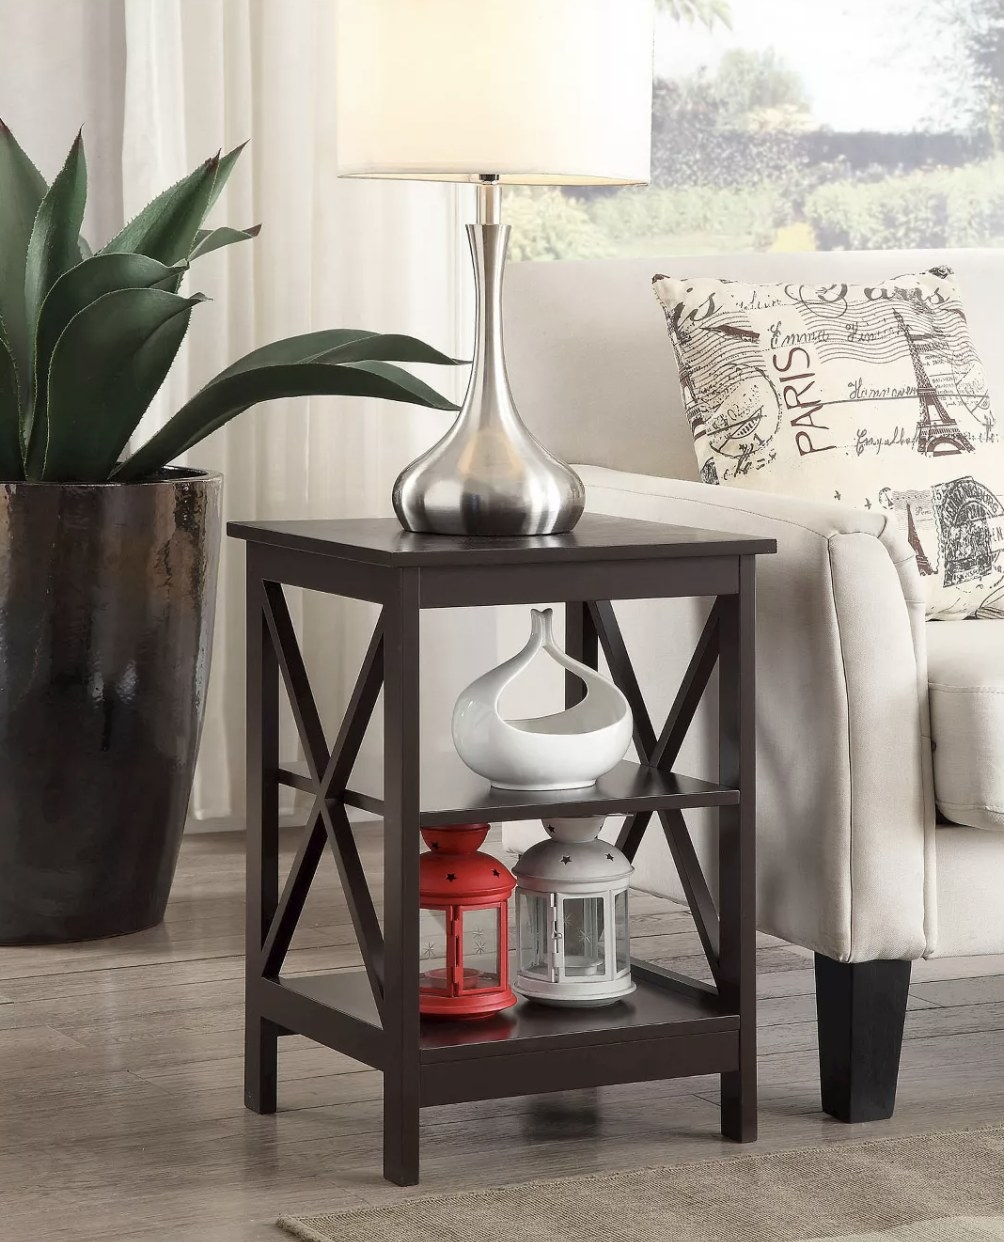 The end table in a dark espresso color